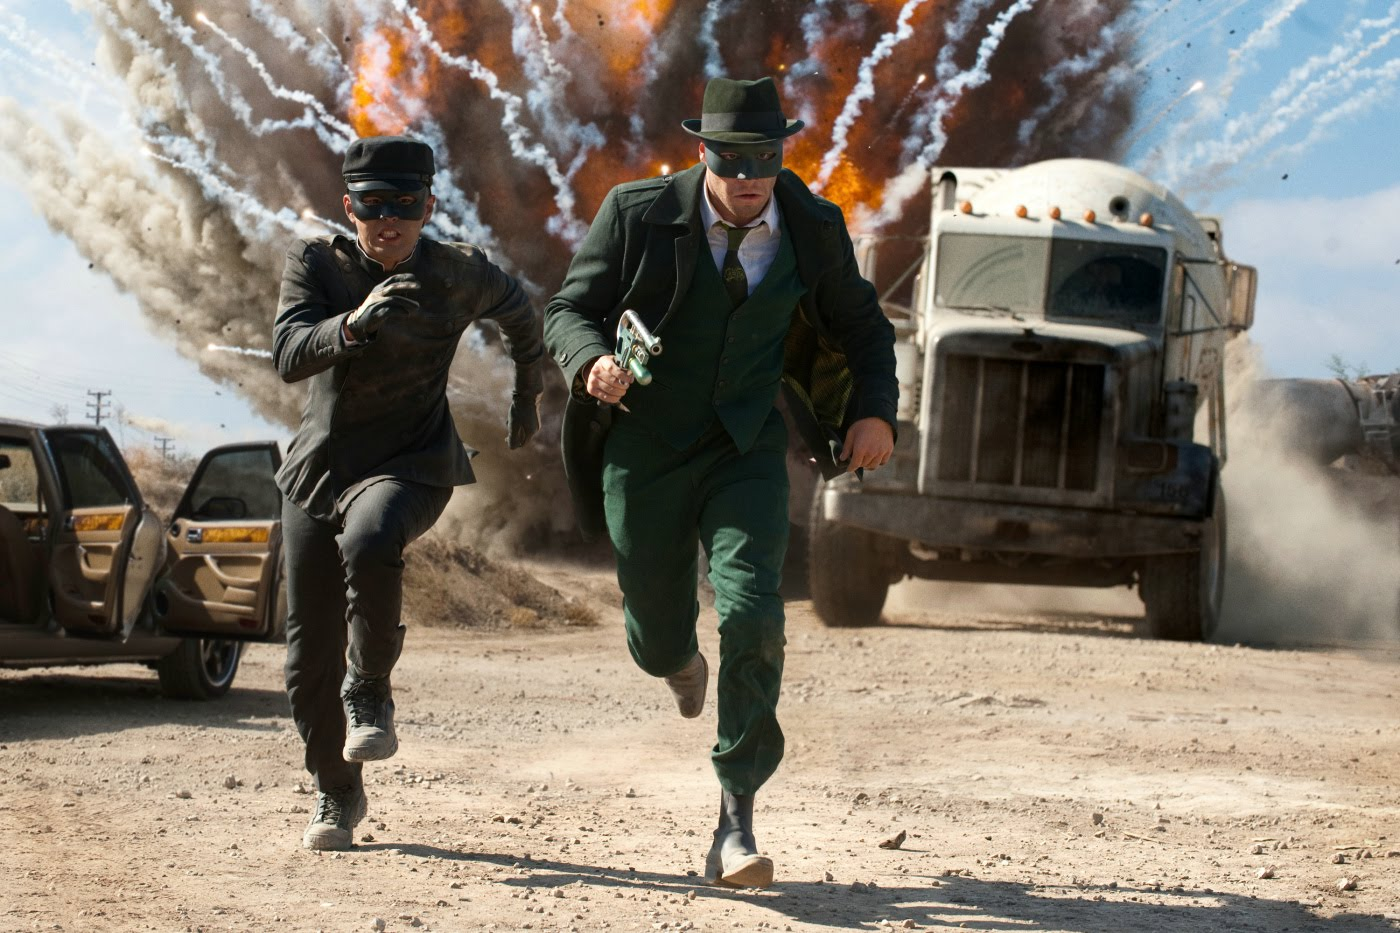 (l to r) Kato (Jay Chou) and The Green Hornet (Seth Rogen) in action in The Green Hornet (2011)